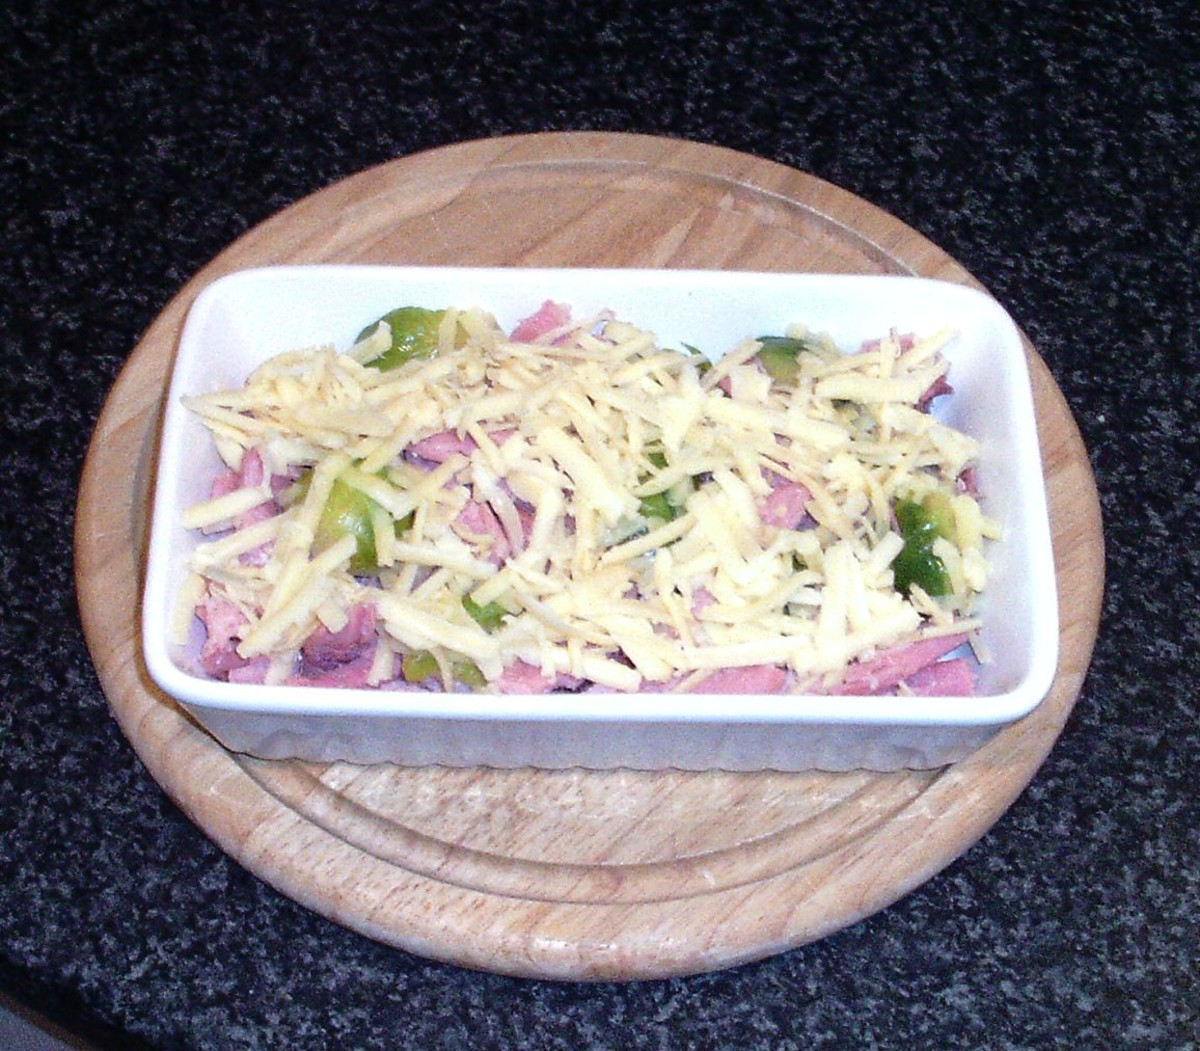 Cheese scattered over ham and sprouts